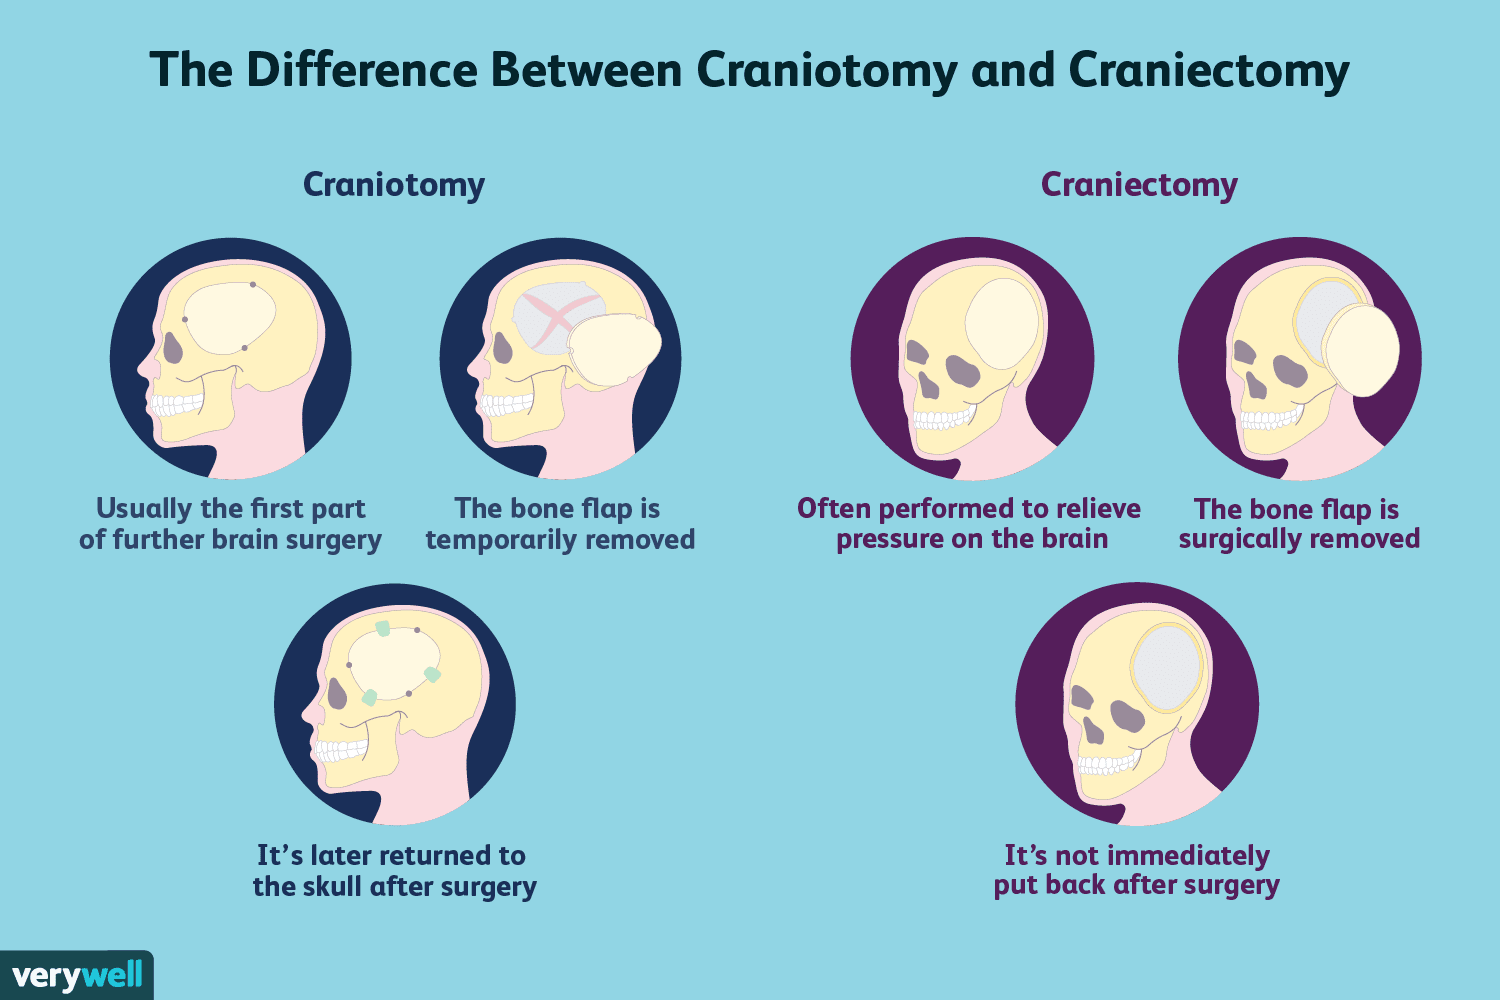 The Difference Between Craniotomy and Craniectomy